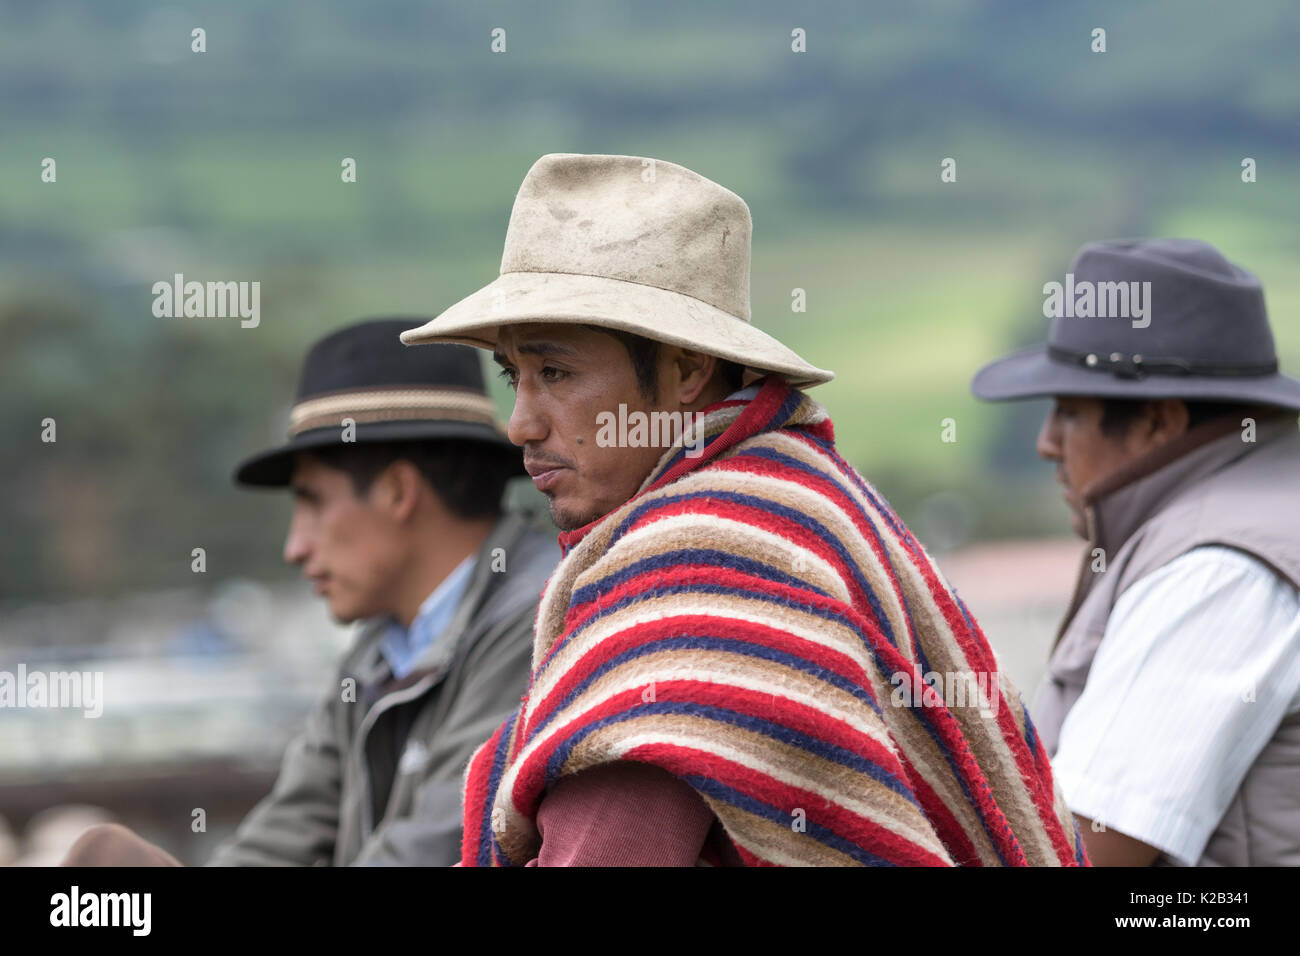 June 3, 2017 Machachi, Ecuador: closeup portrait of a cowboys in the andes wearing traditional clothing - Stock Image